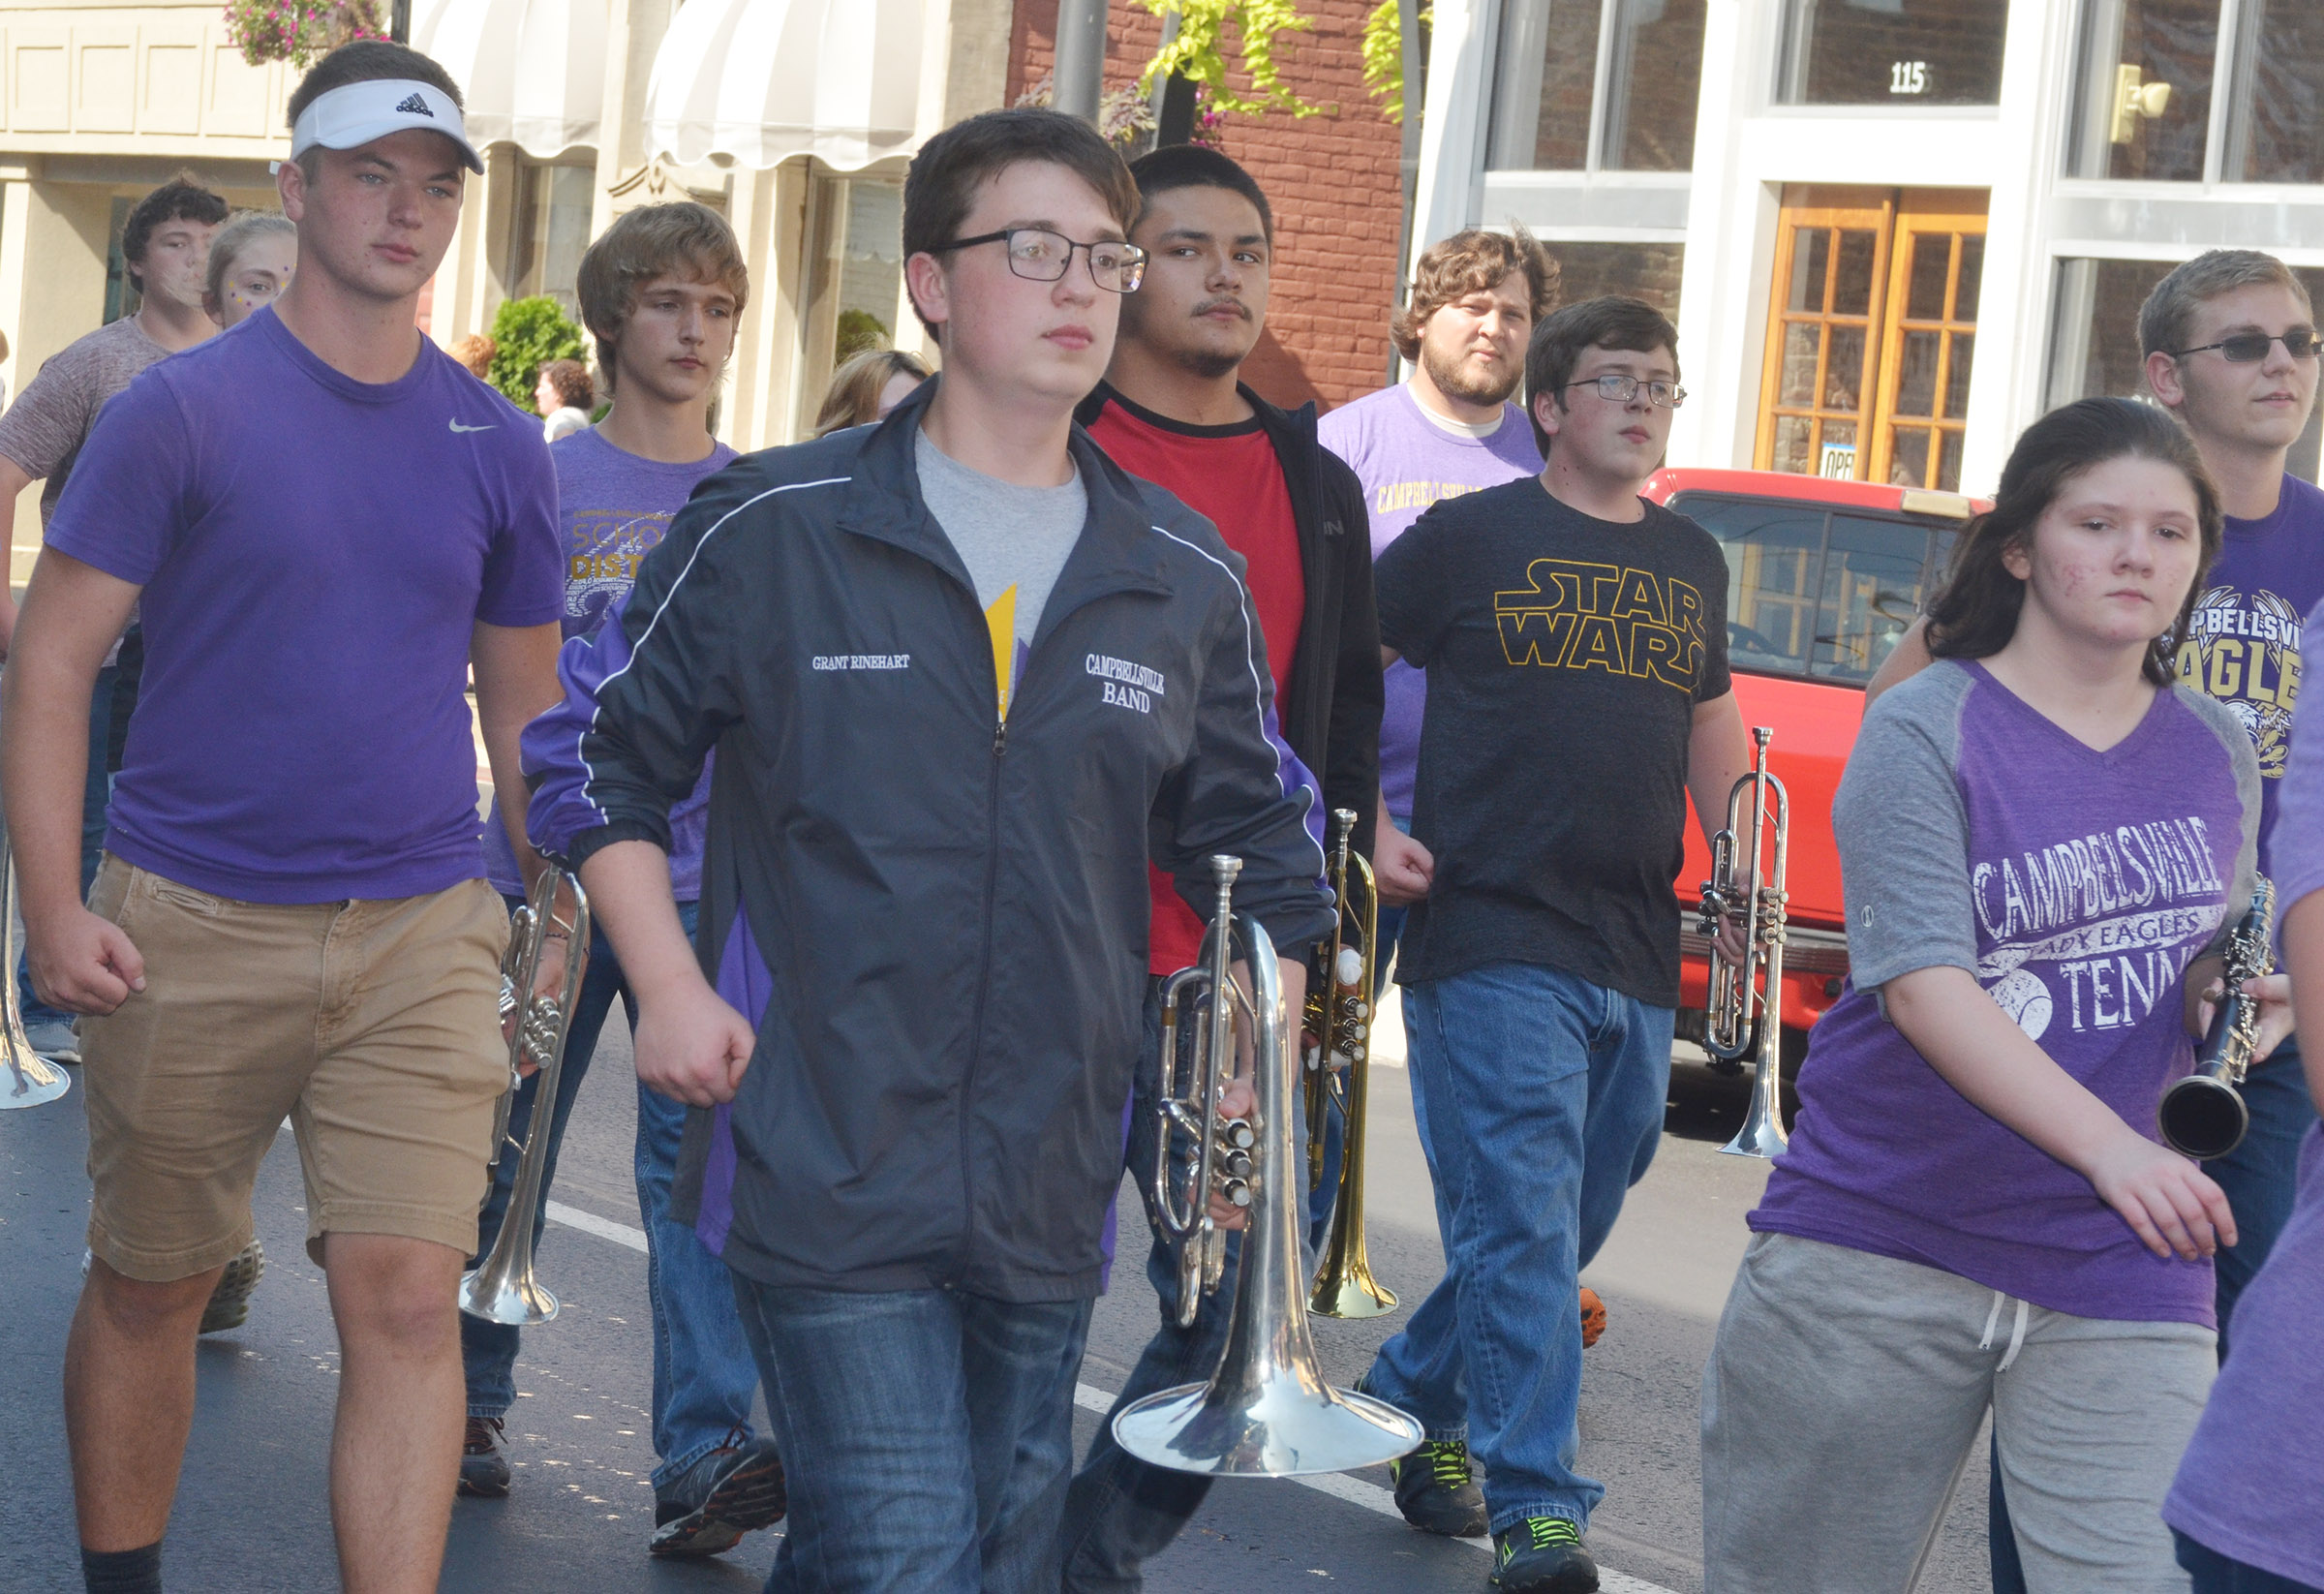 CHS sophomore Grant Rinehart marches in the parade.